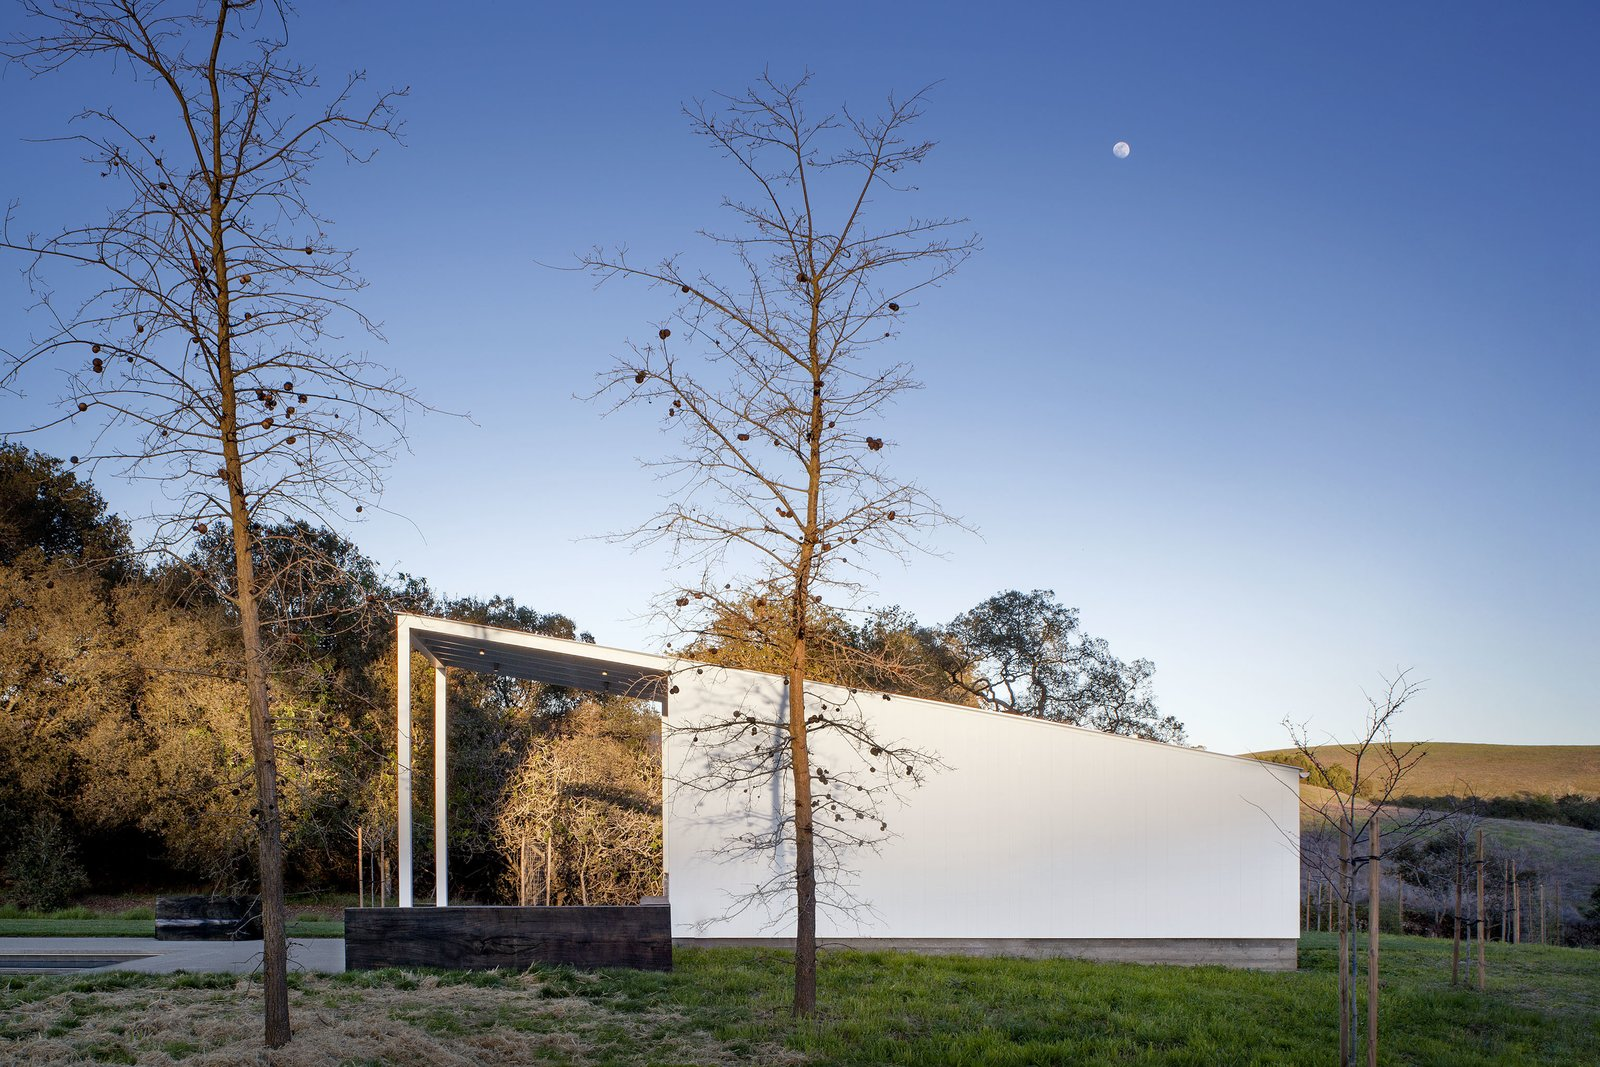 #TurnbullGriffinHaesloop #exterior #poolhouse #landscape   Hupomone Ranch by Turnbull Griffin Haesloop Architects